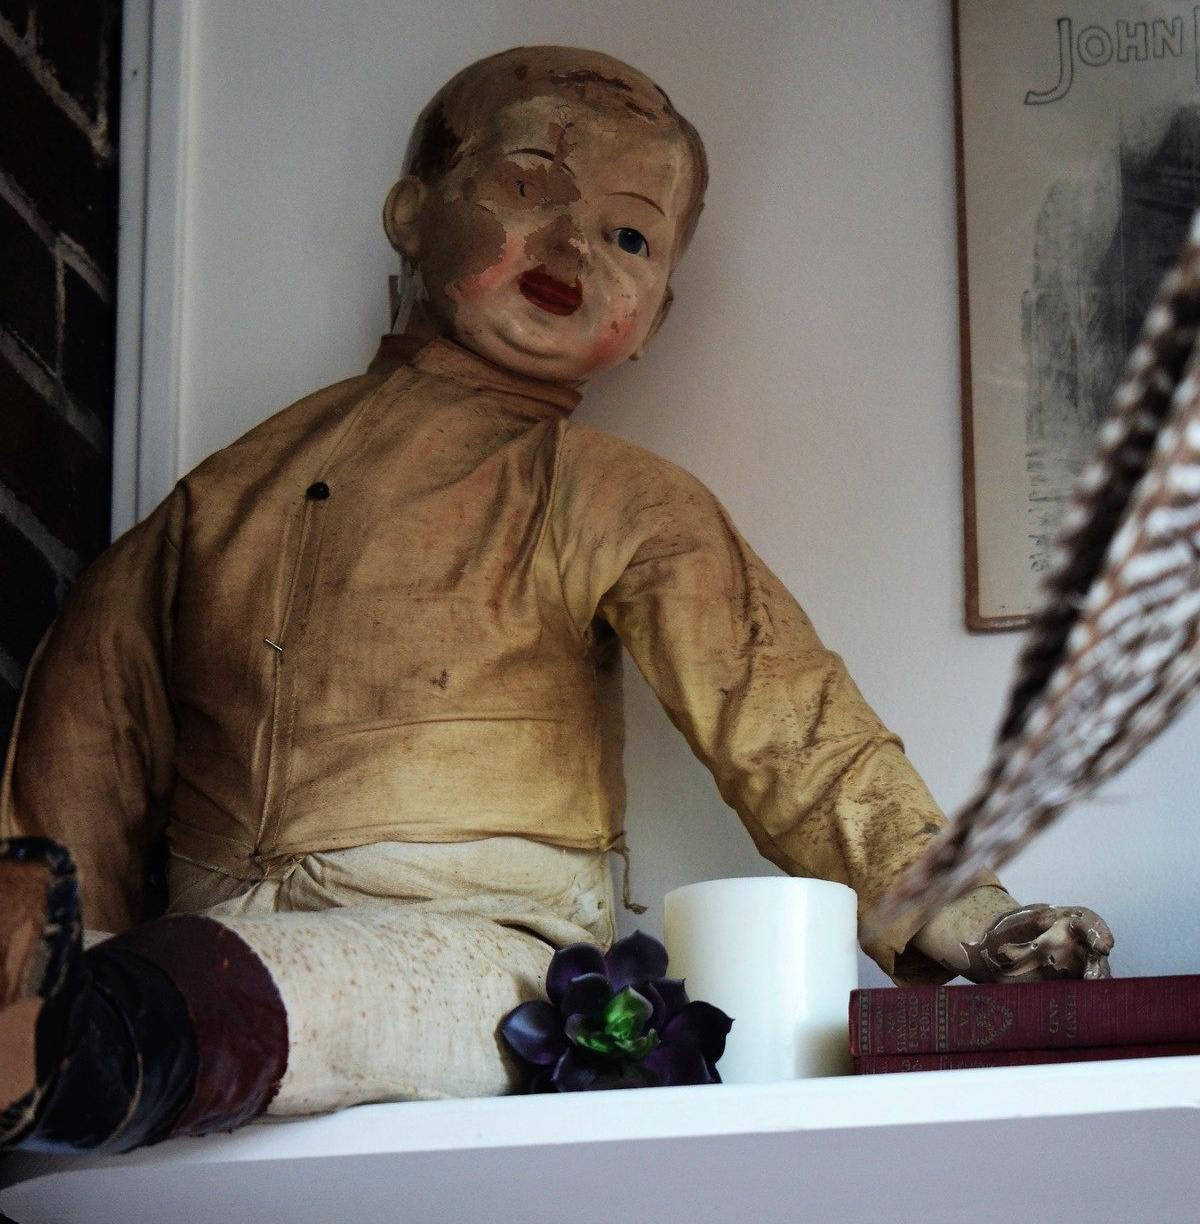 Charley – The Haunted Doll